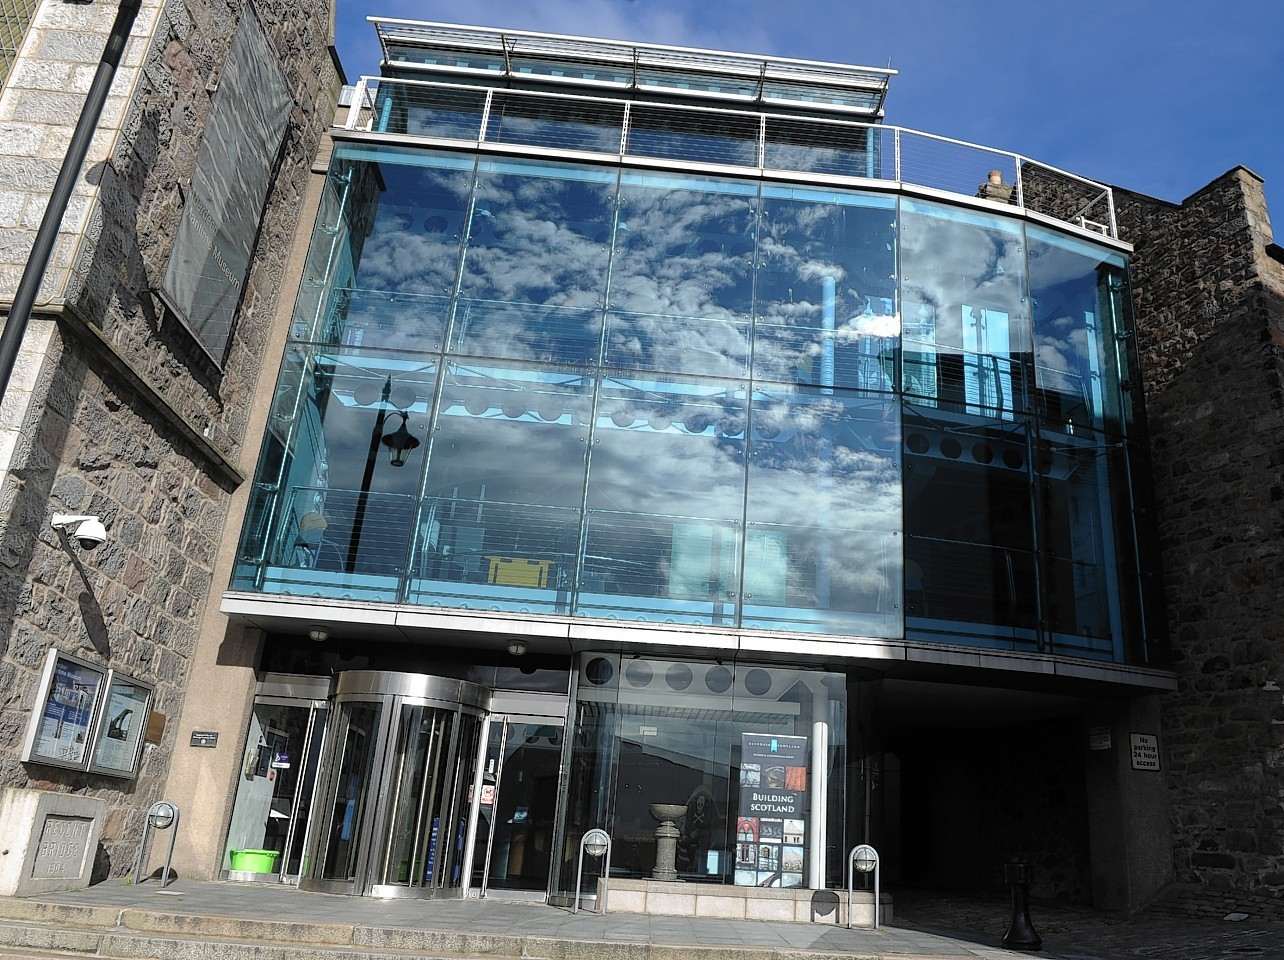 The museum re-opened on Wednesday